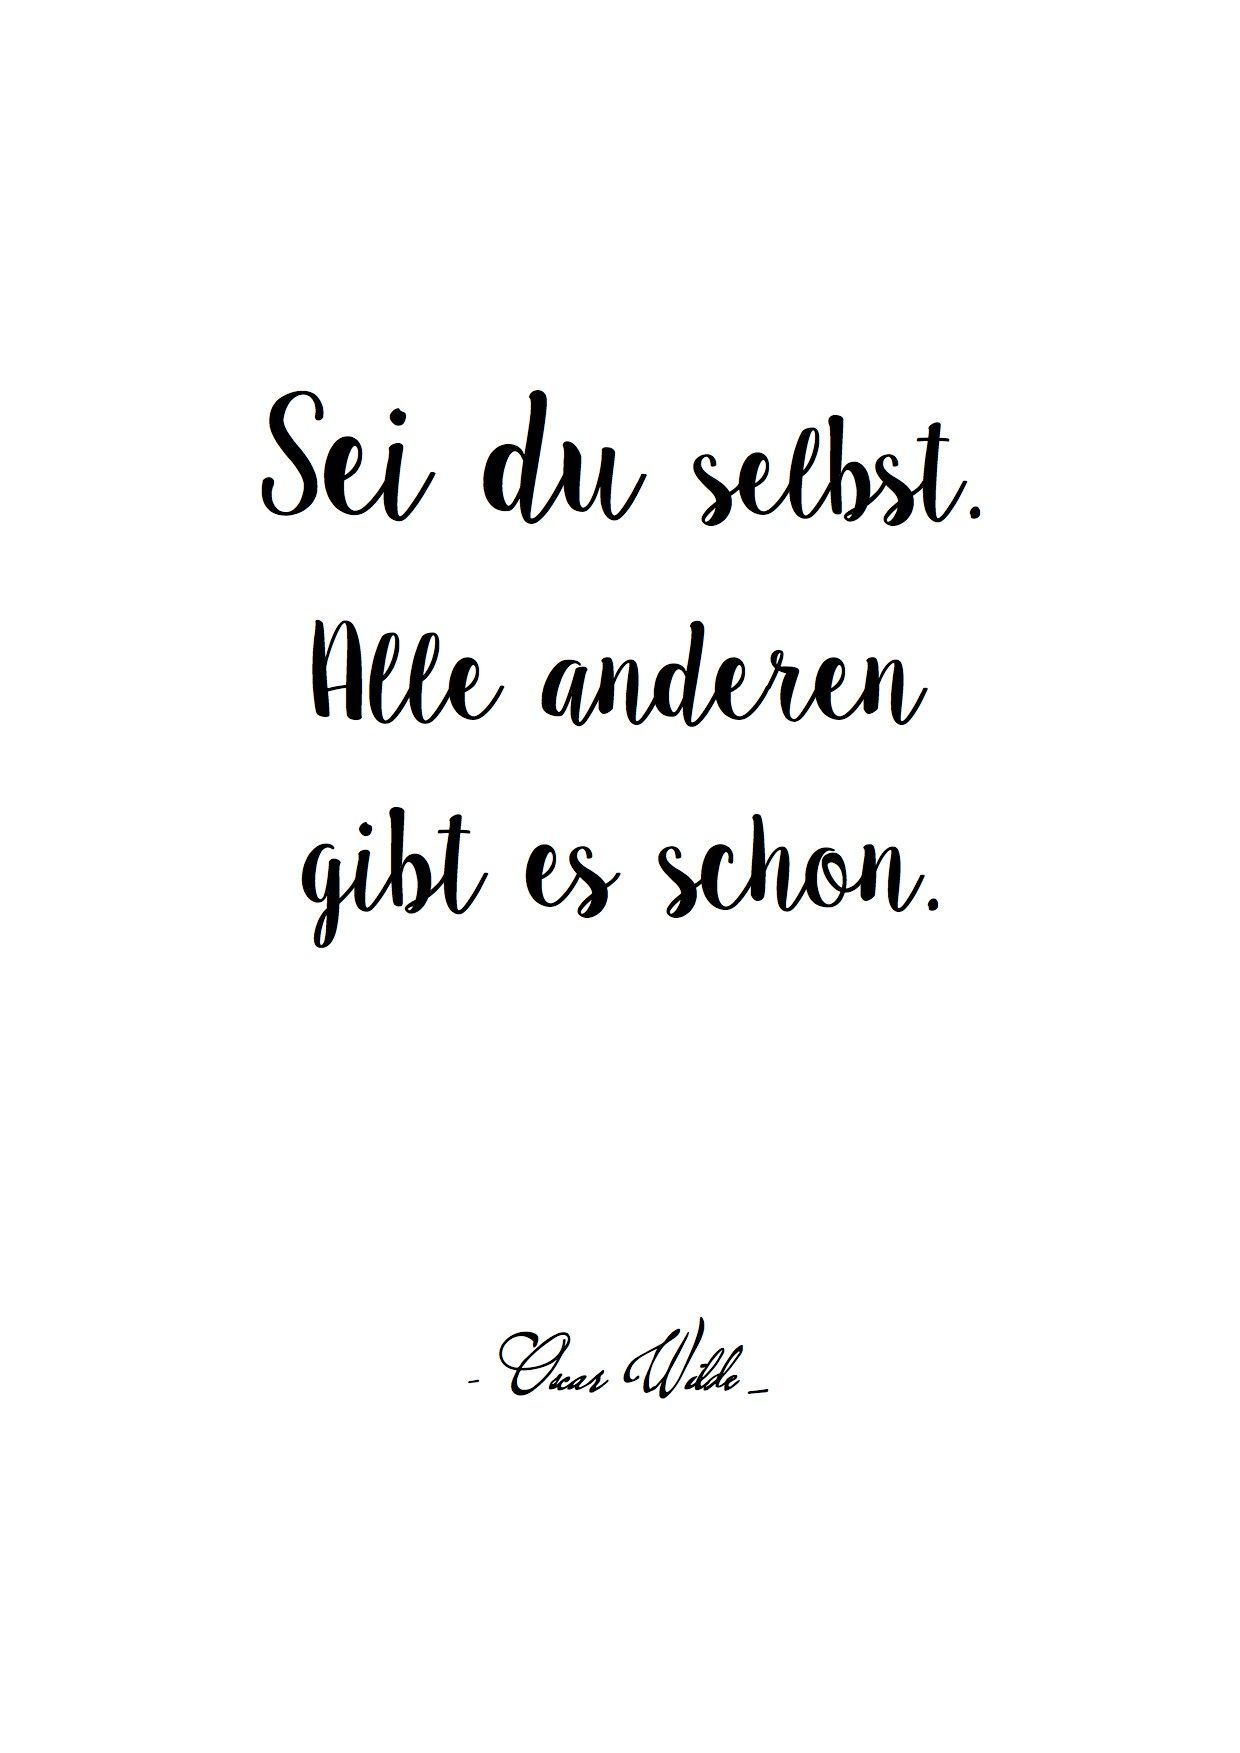 Image Result For Gute Zitate Oscar Wilde